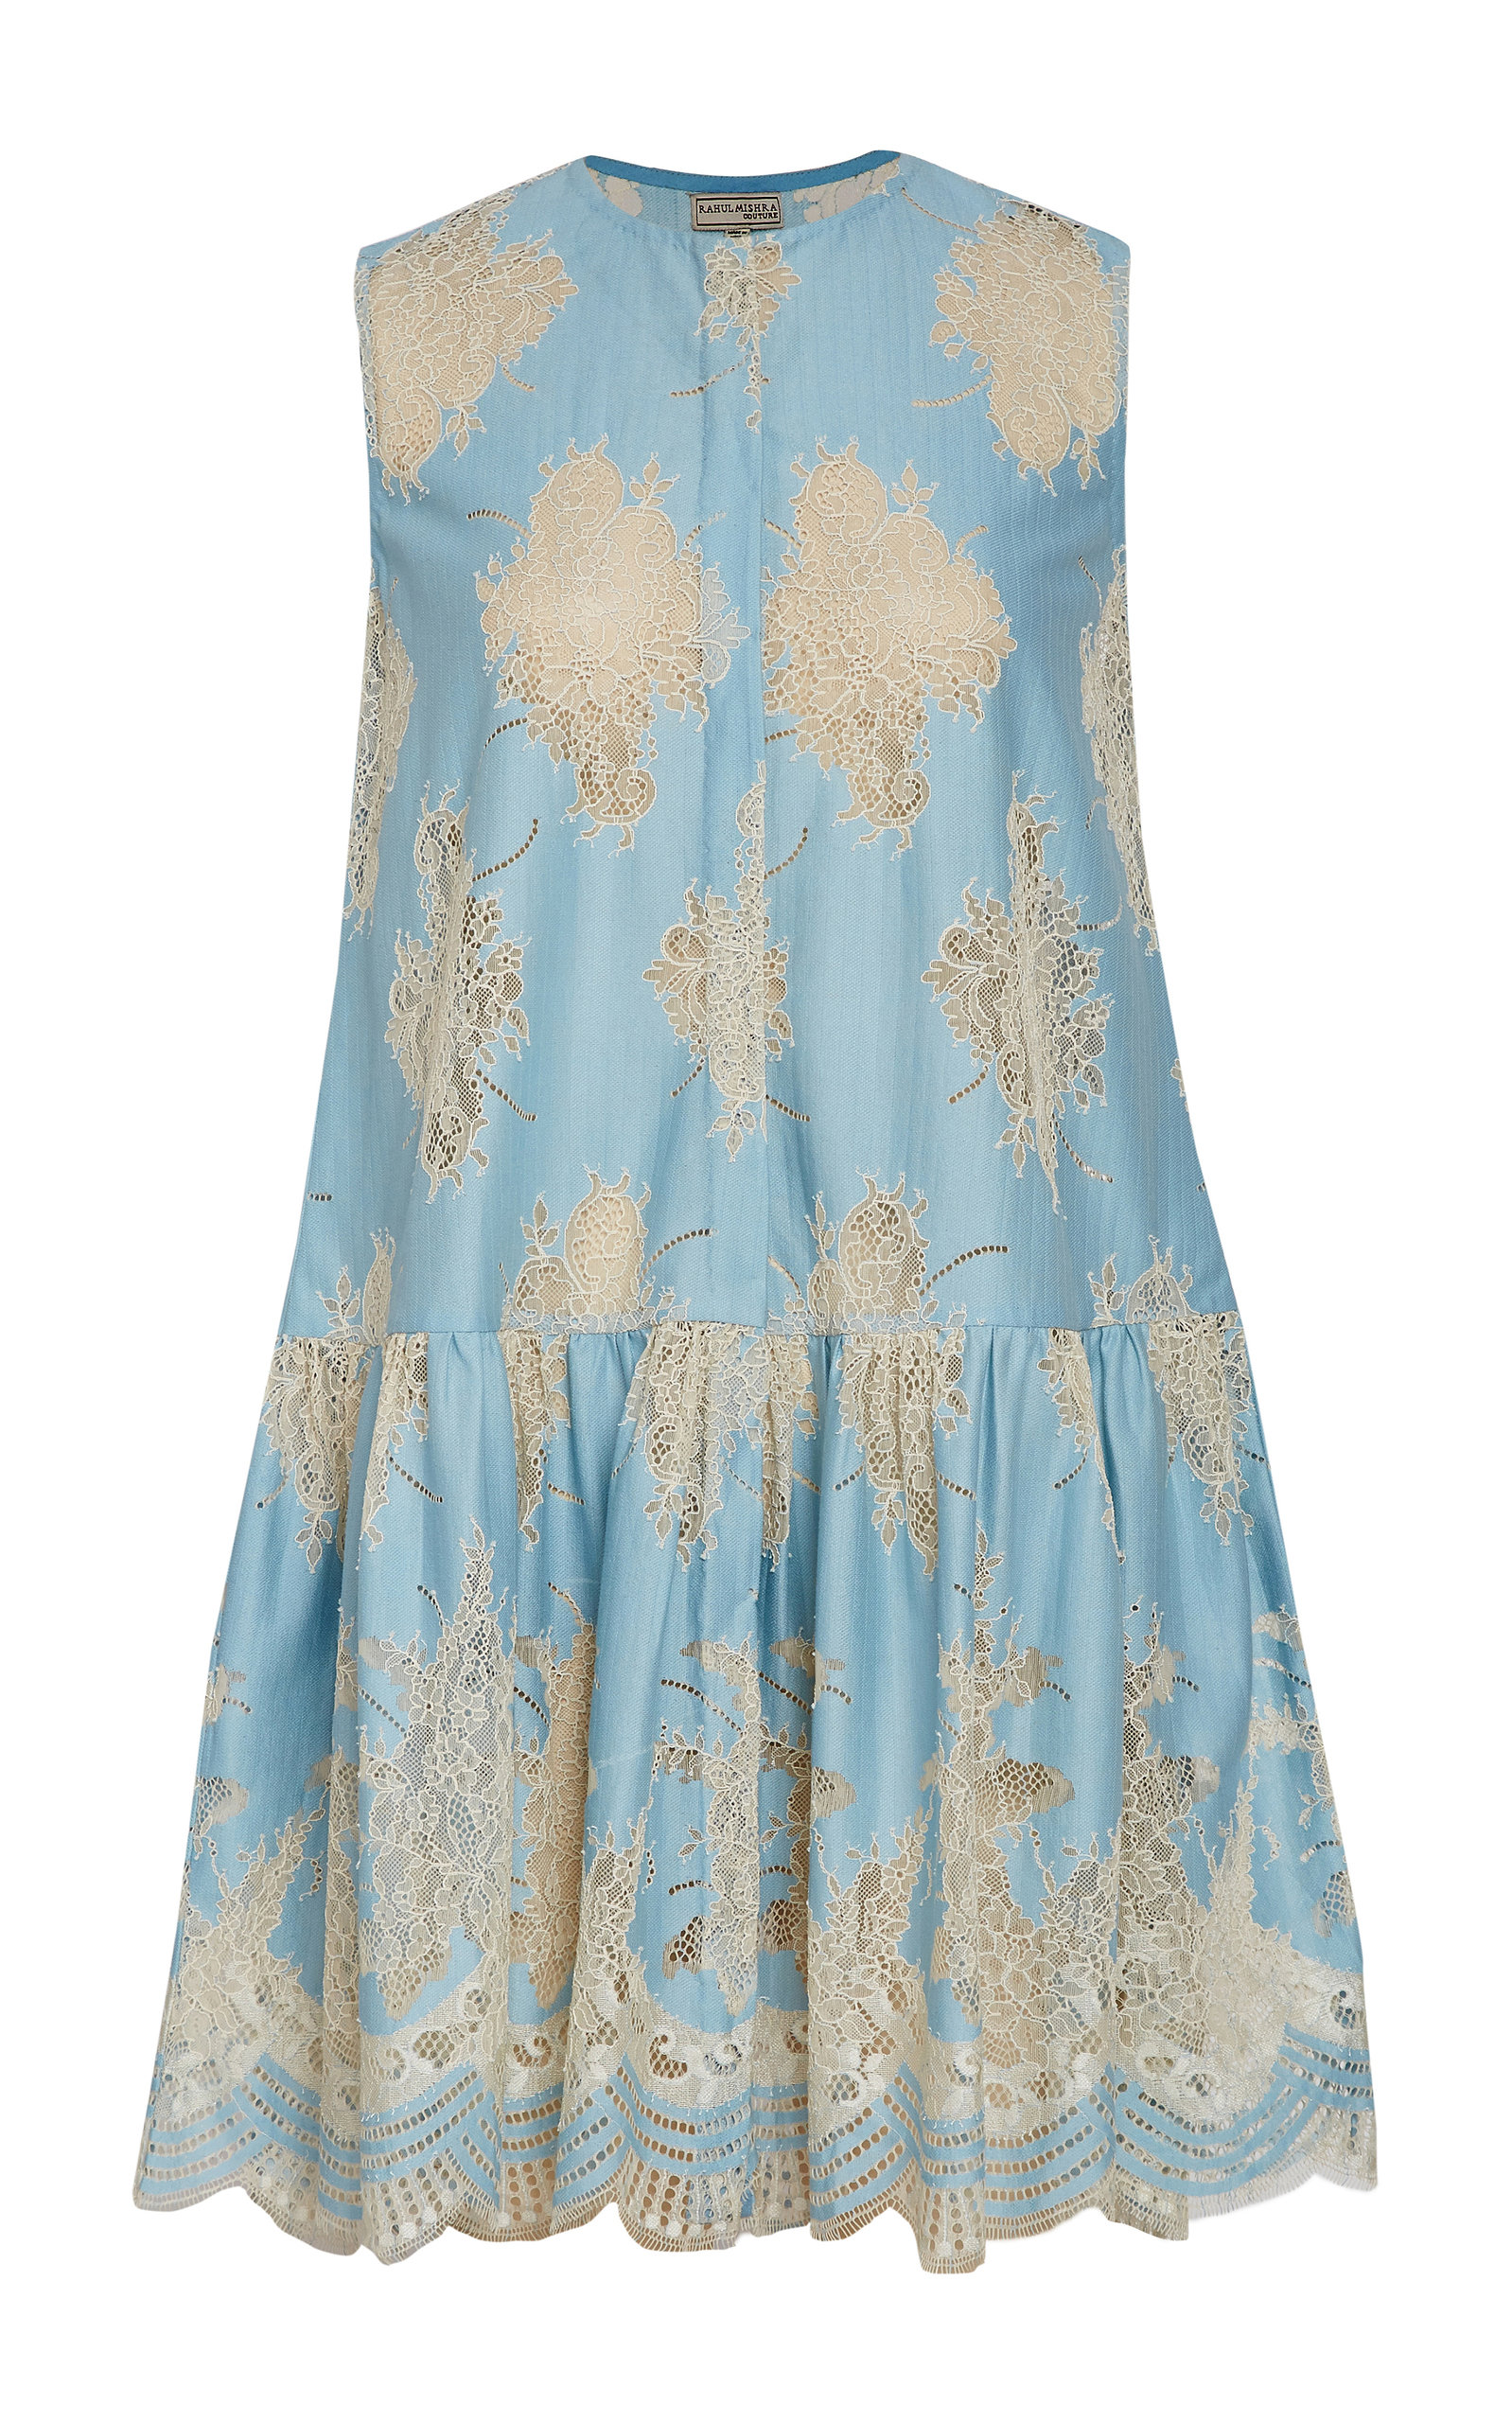 RAHUL MISHRA Dew Lace Gathered Cotton Blend Sleeveless Top in Blue